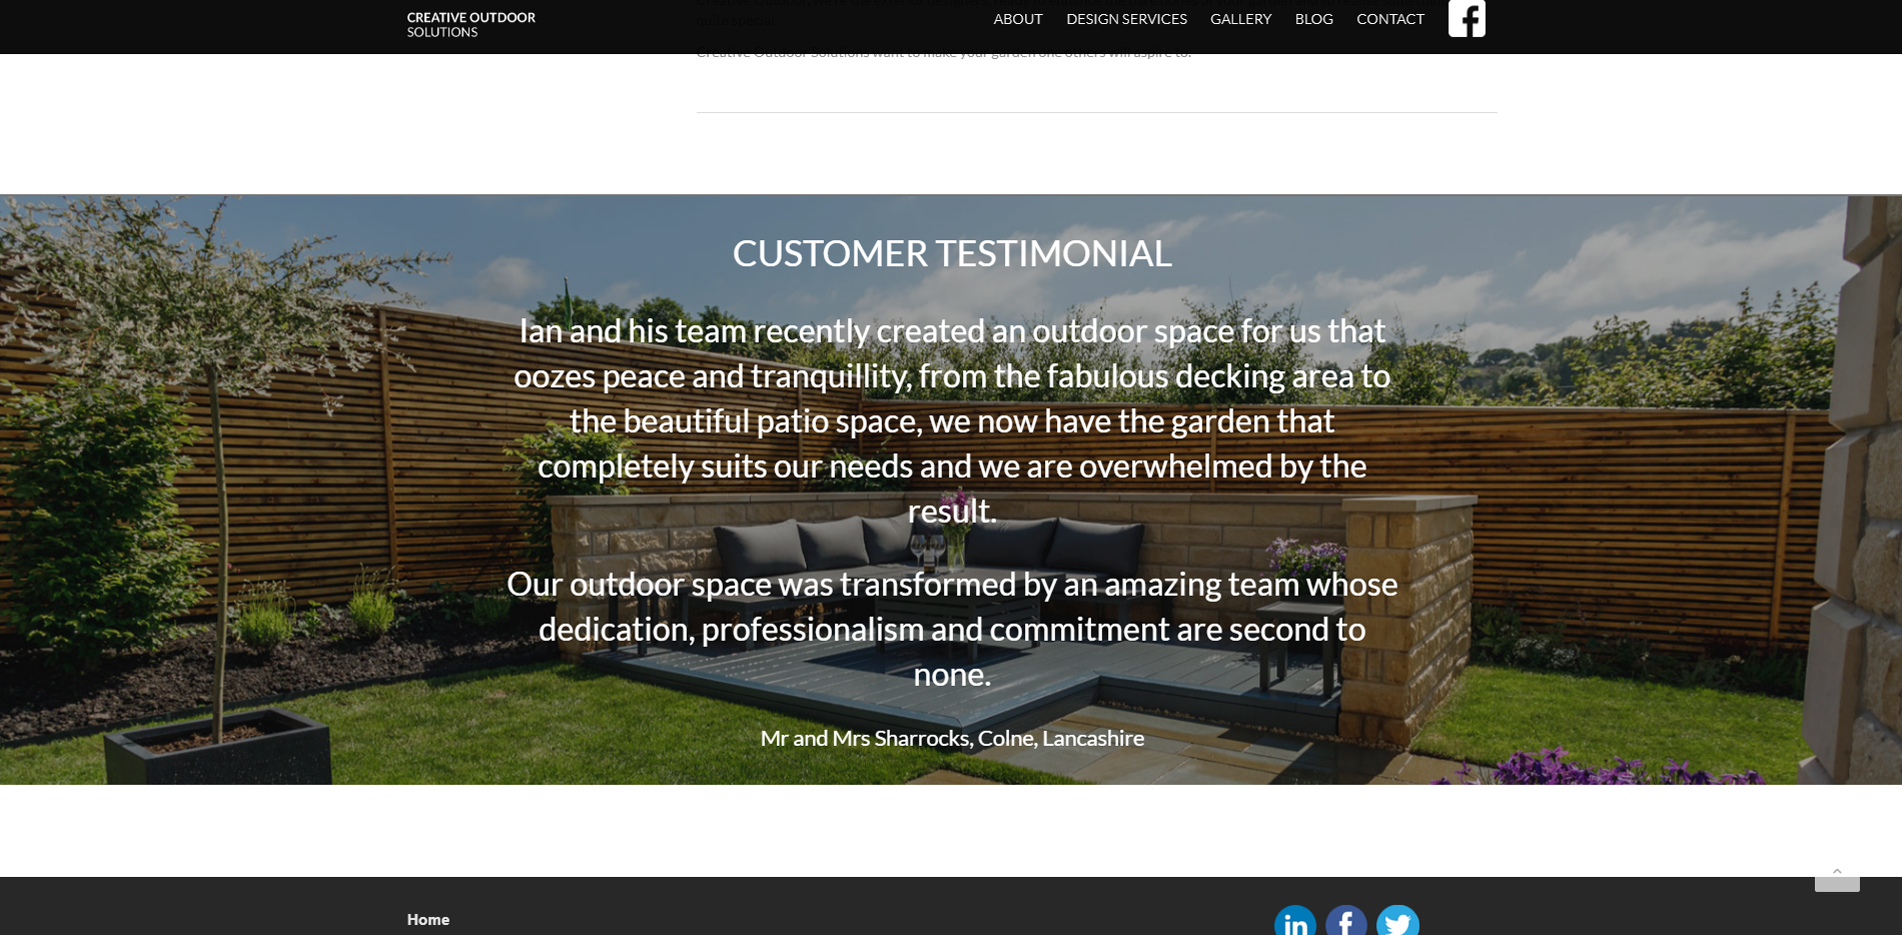 Creative Outdoor Solutions testimonials page